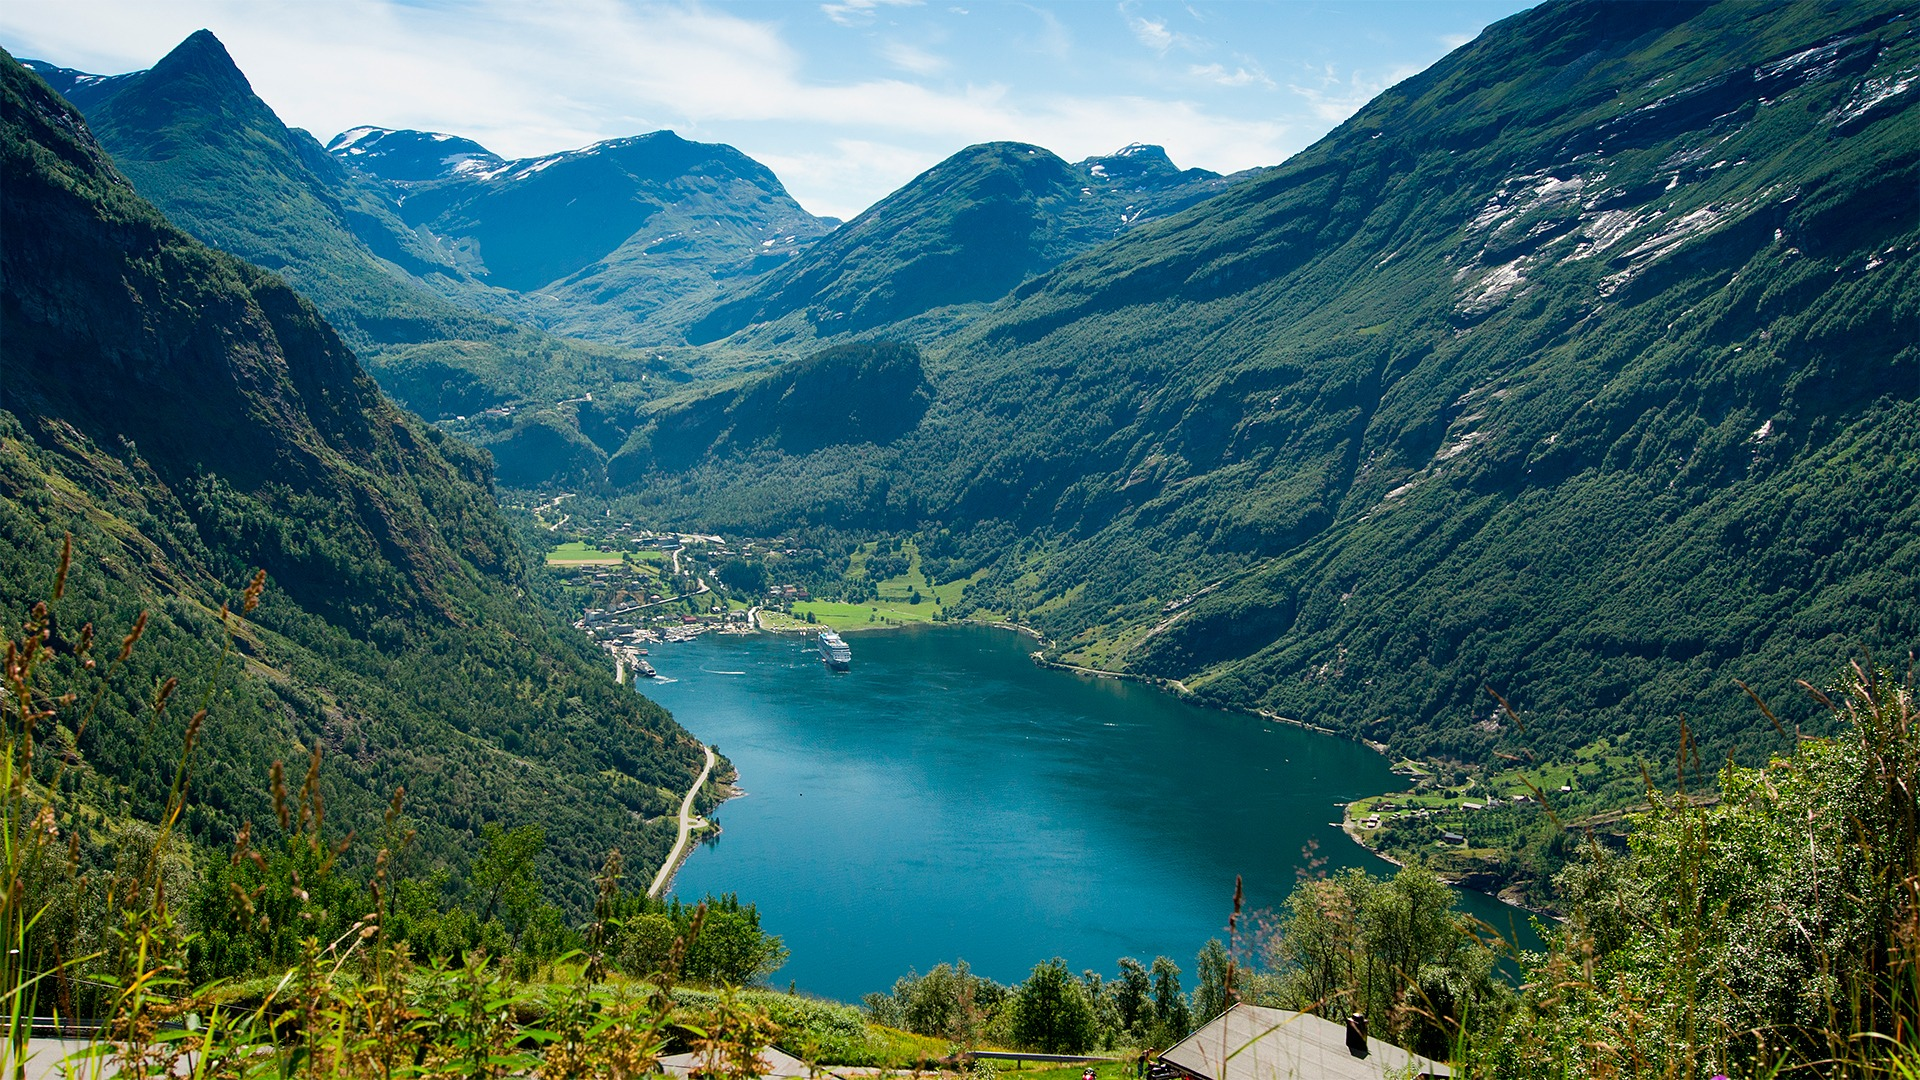 The Geirangerfjord is part of the West Norwegian Fjords area, which is inscribed on the UNESCO World Heritage List. Photo: Ludovic Péron (CC BY-SA), via Wikimedia Commons.